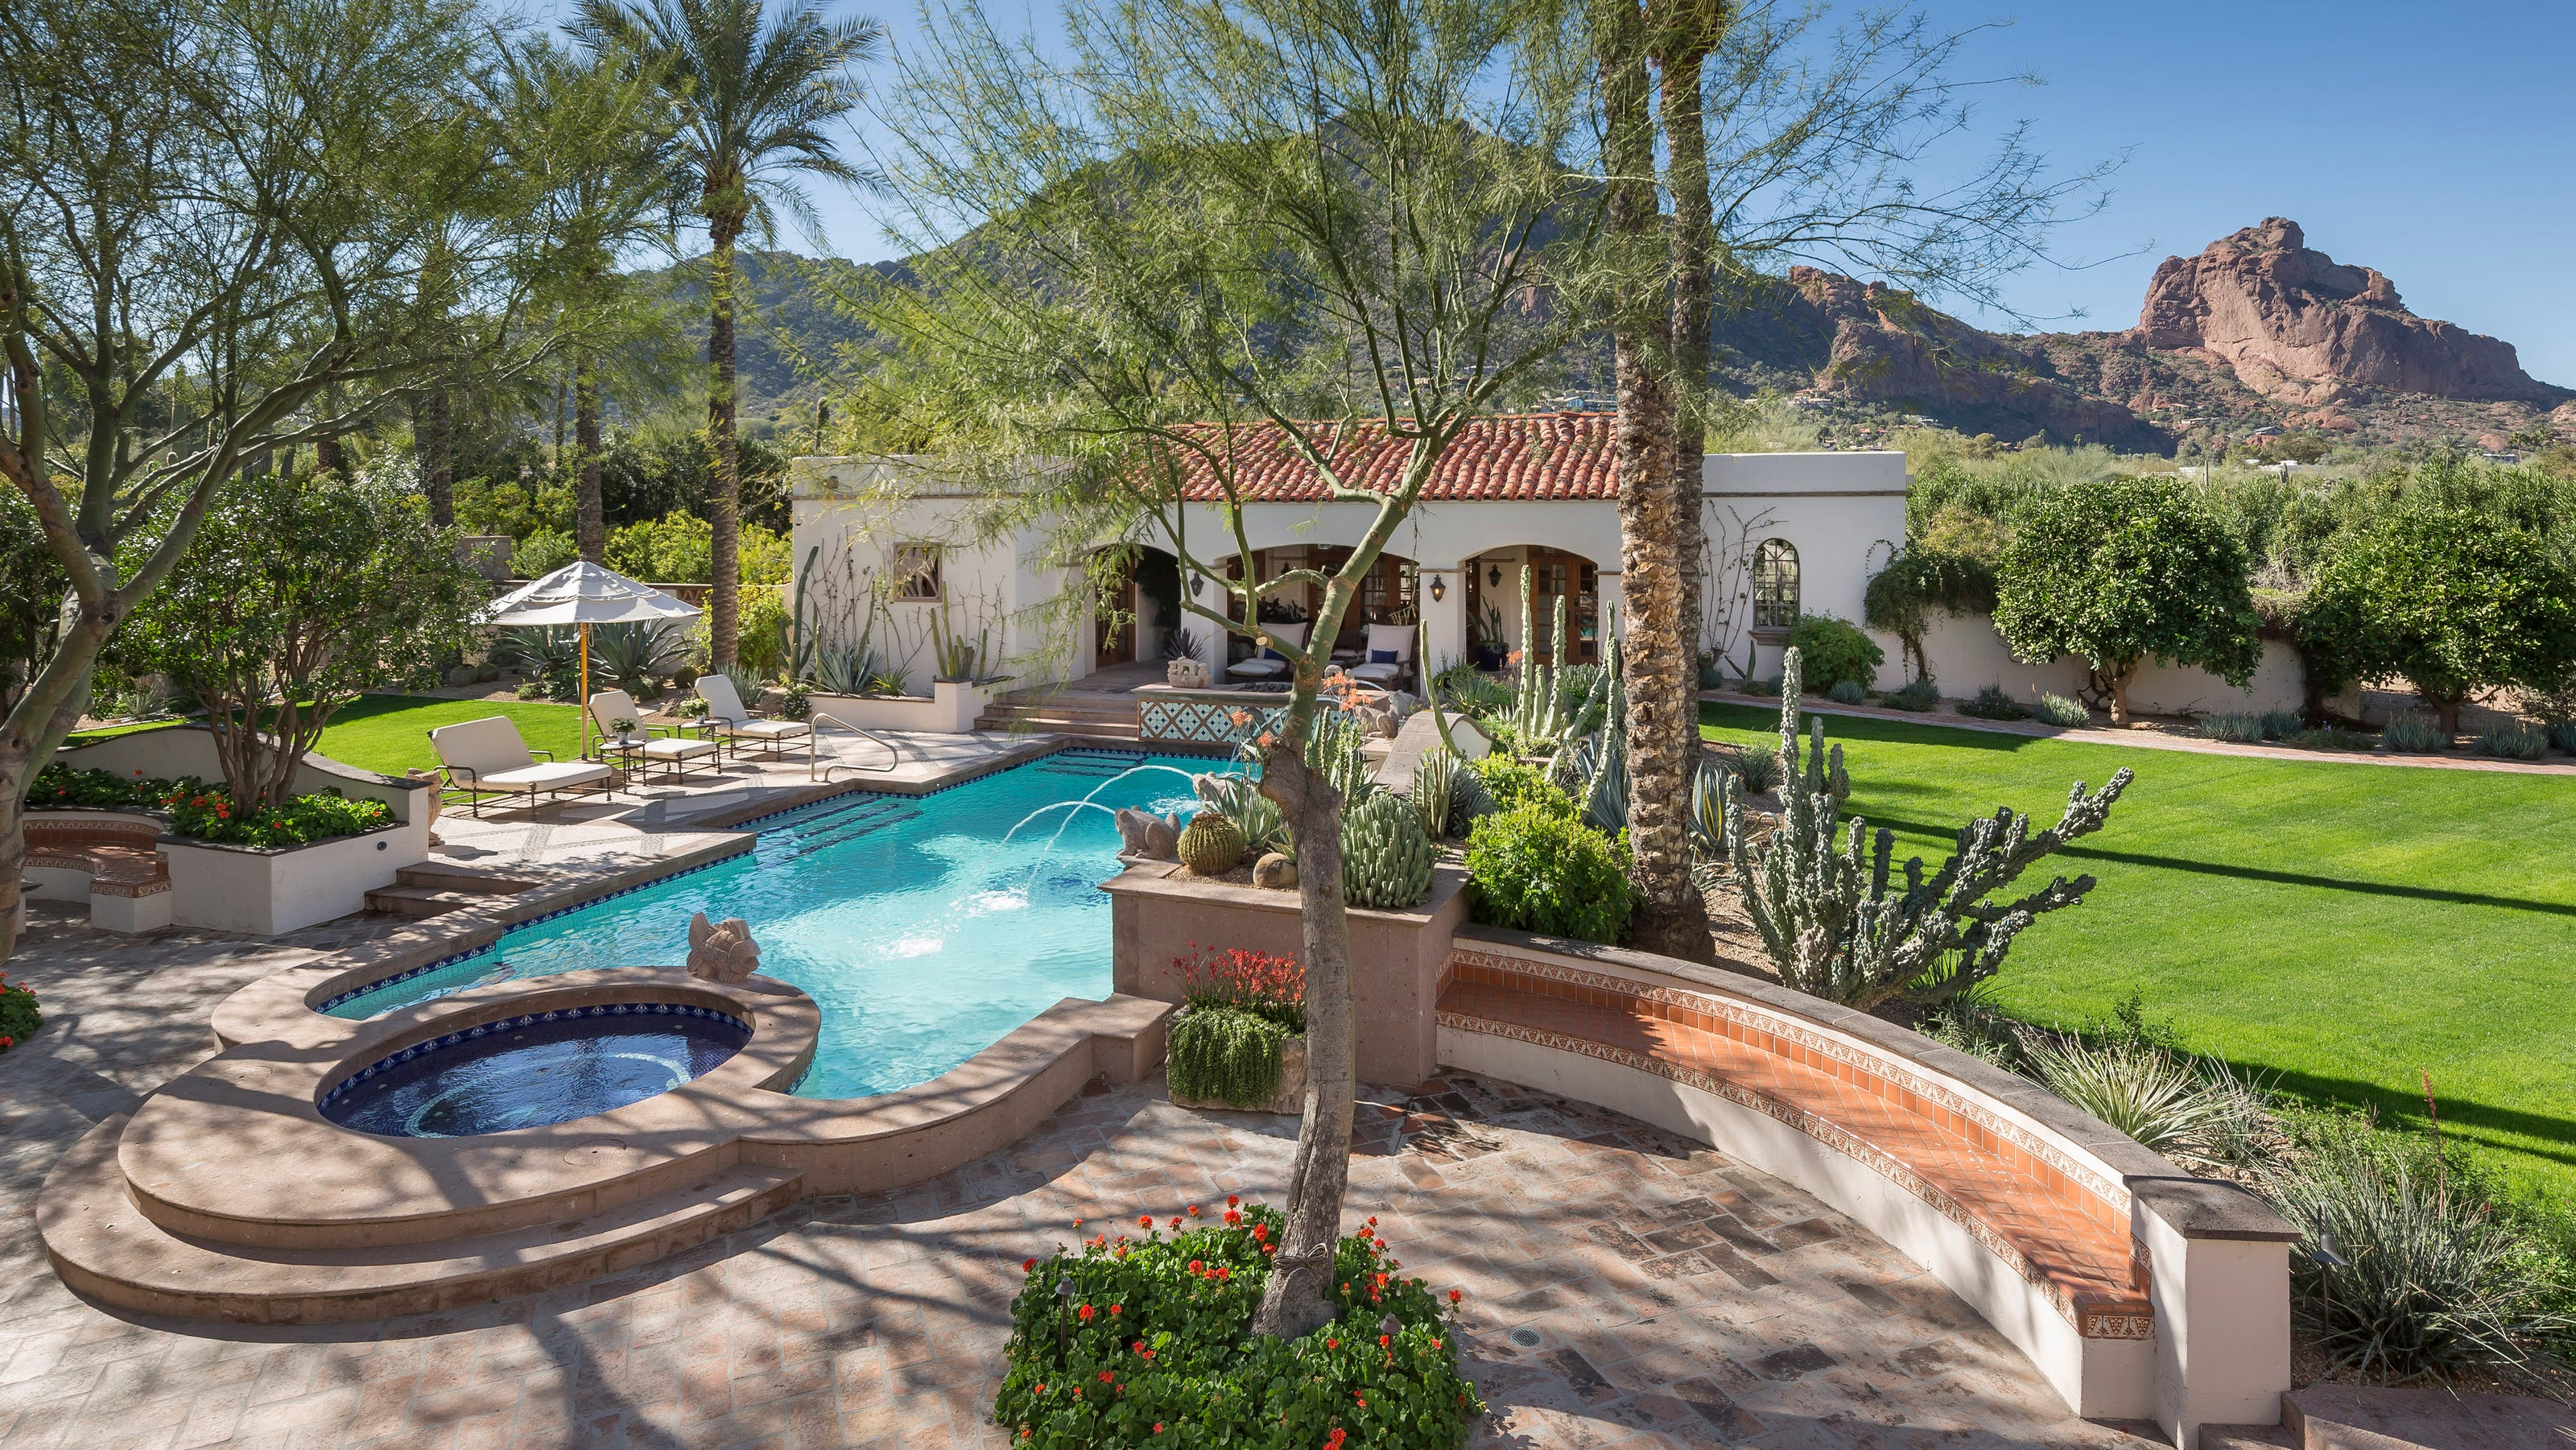 Luxury Homes 13 5m Paradise Valley Mansion With 10 Bathrooms Sells